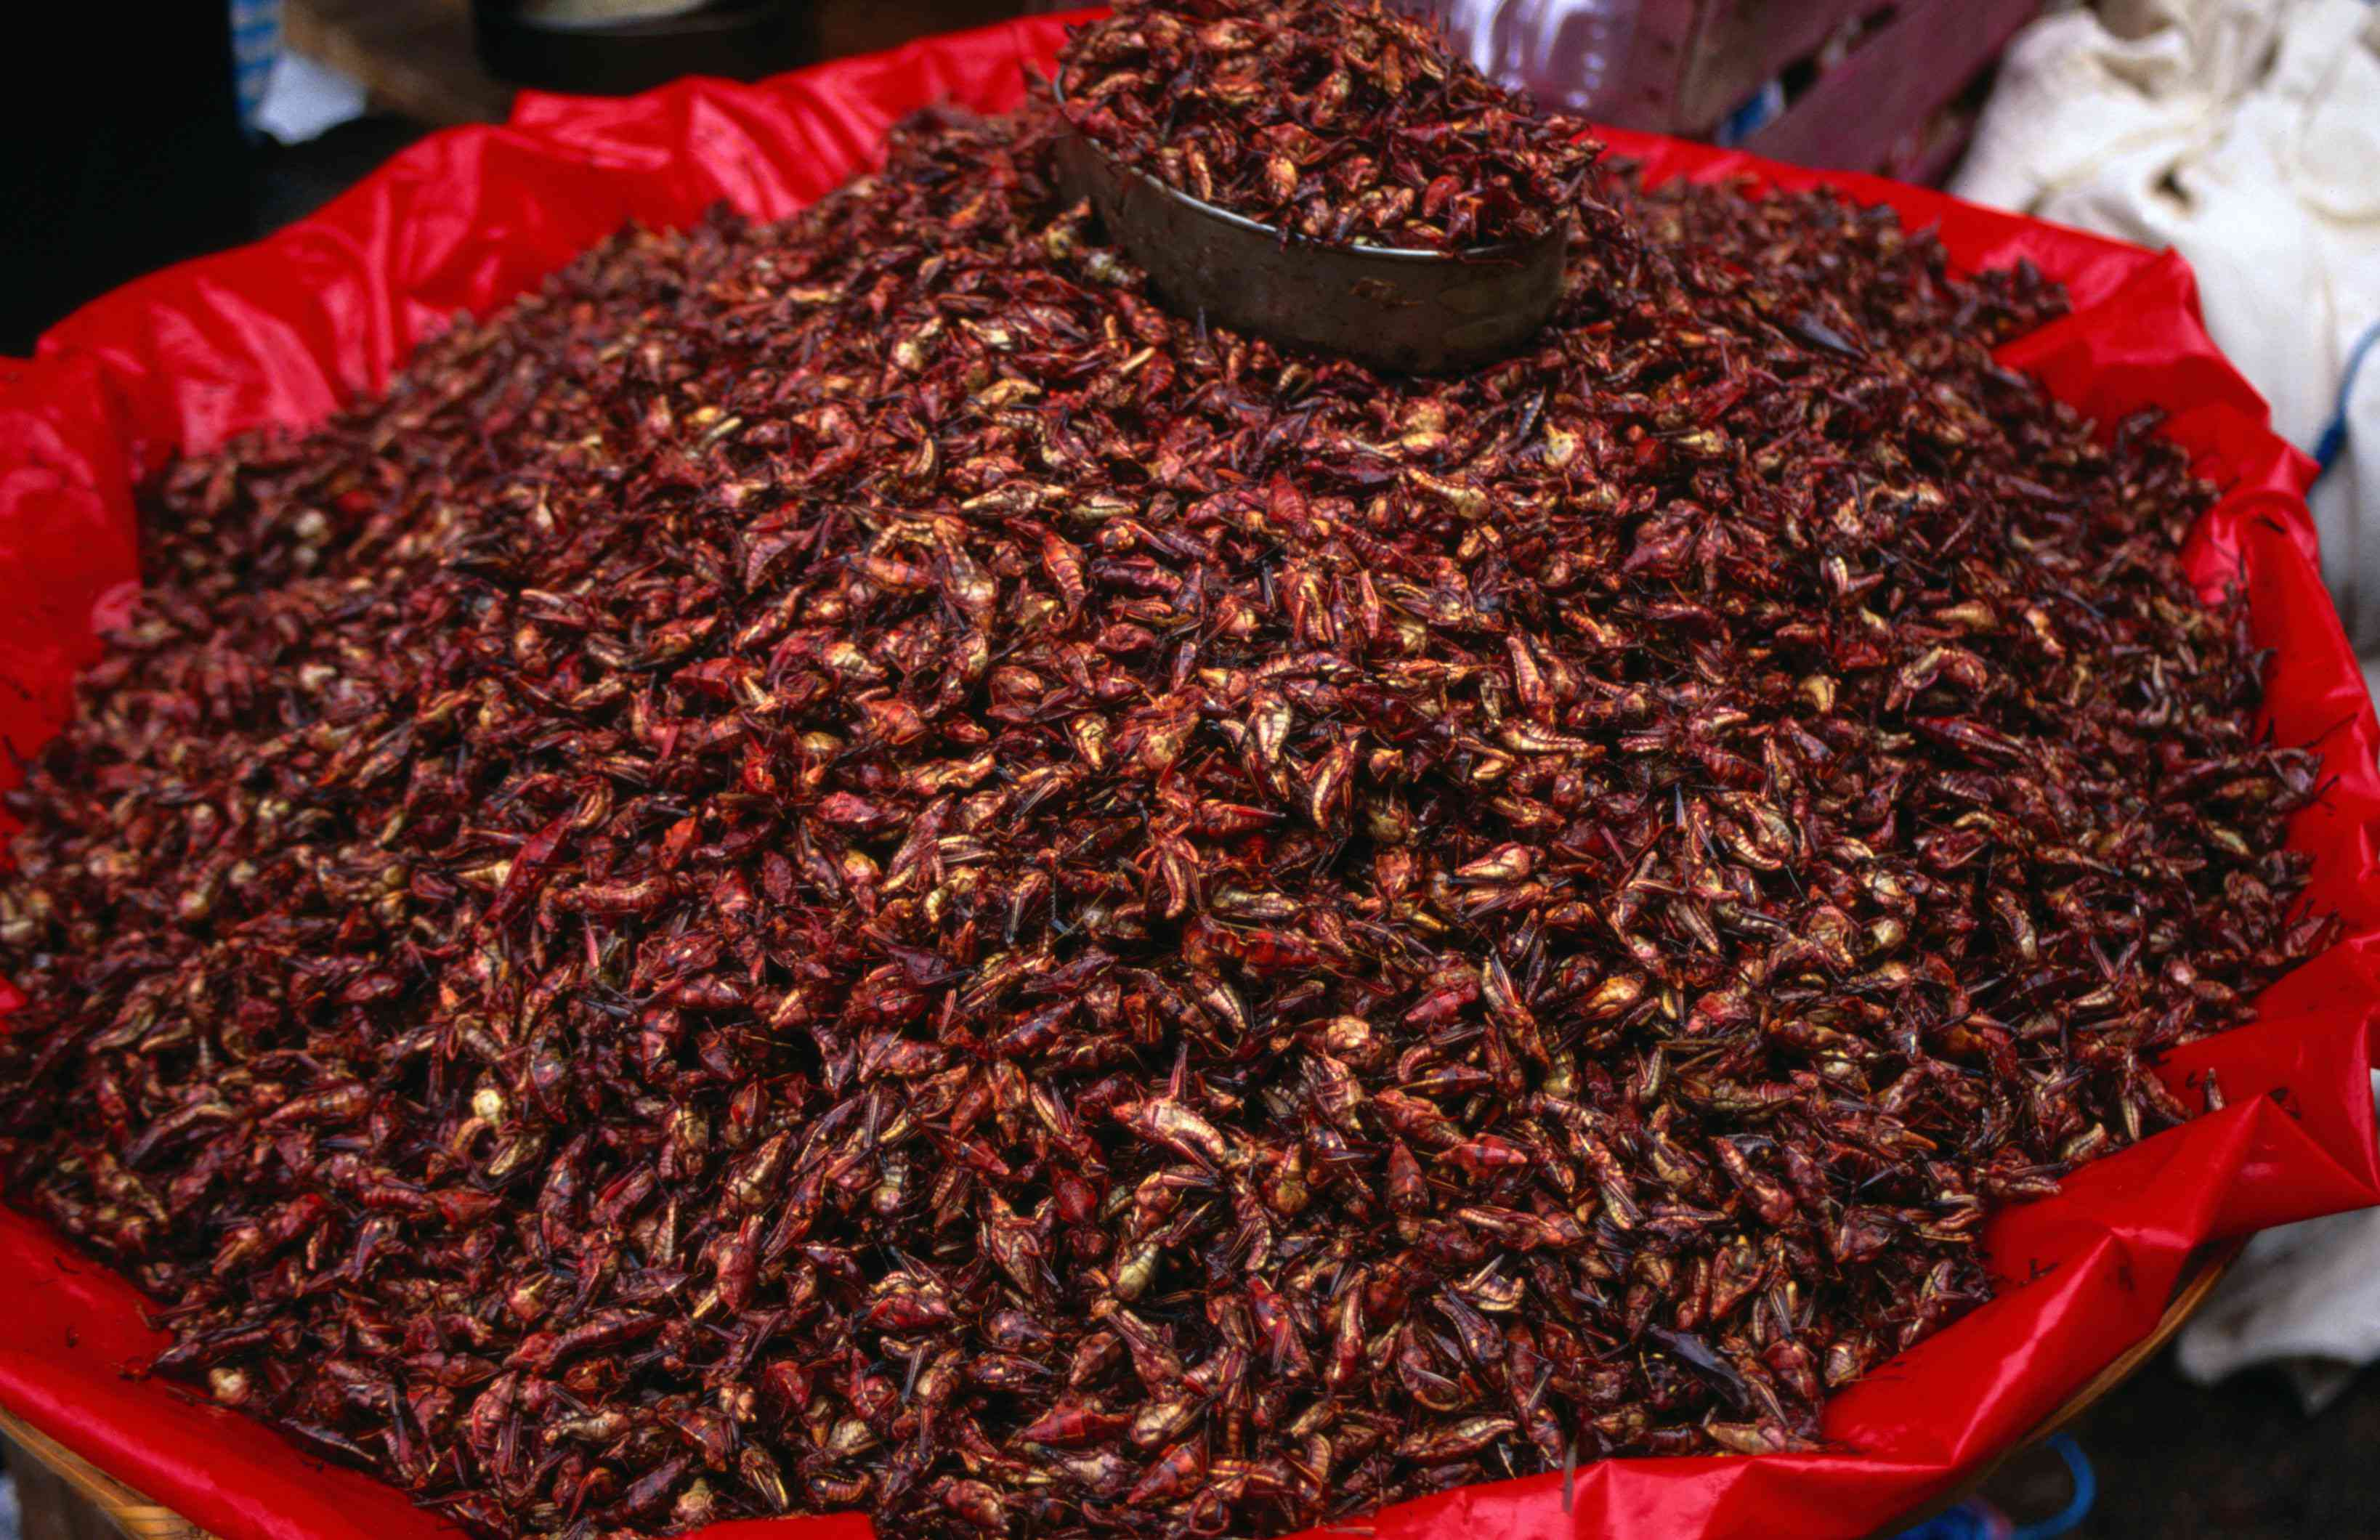 A large container of chapulines (fried grasshoppers) for sale at the Oaxaca market